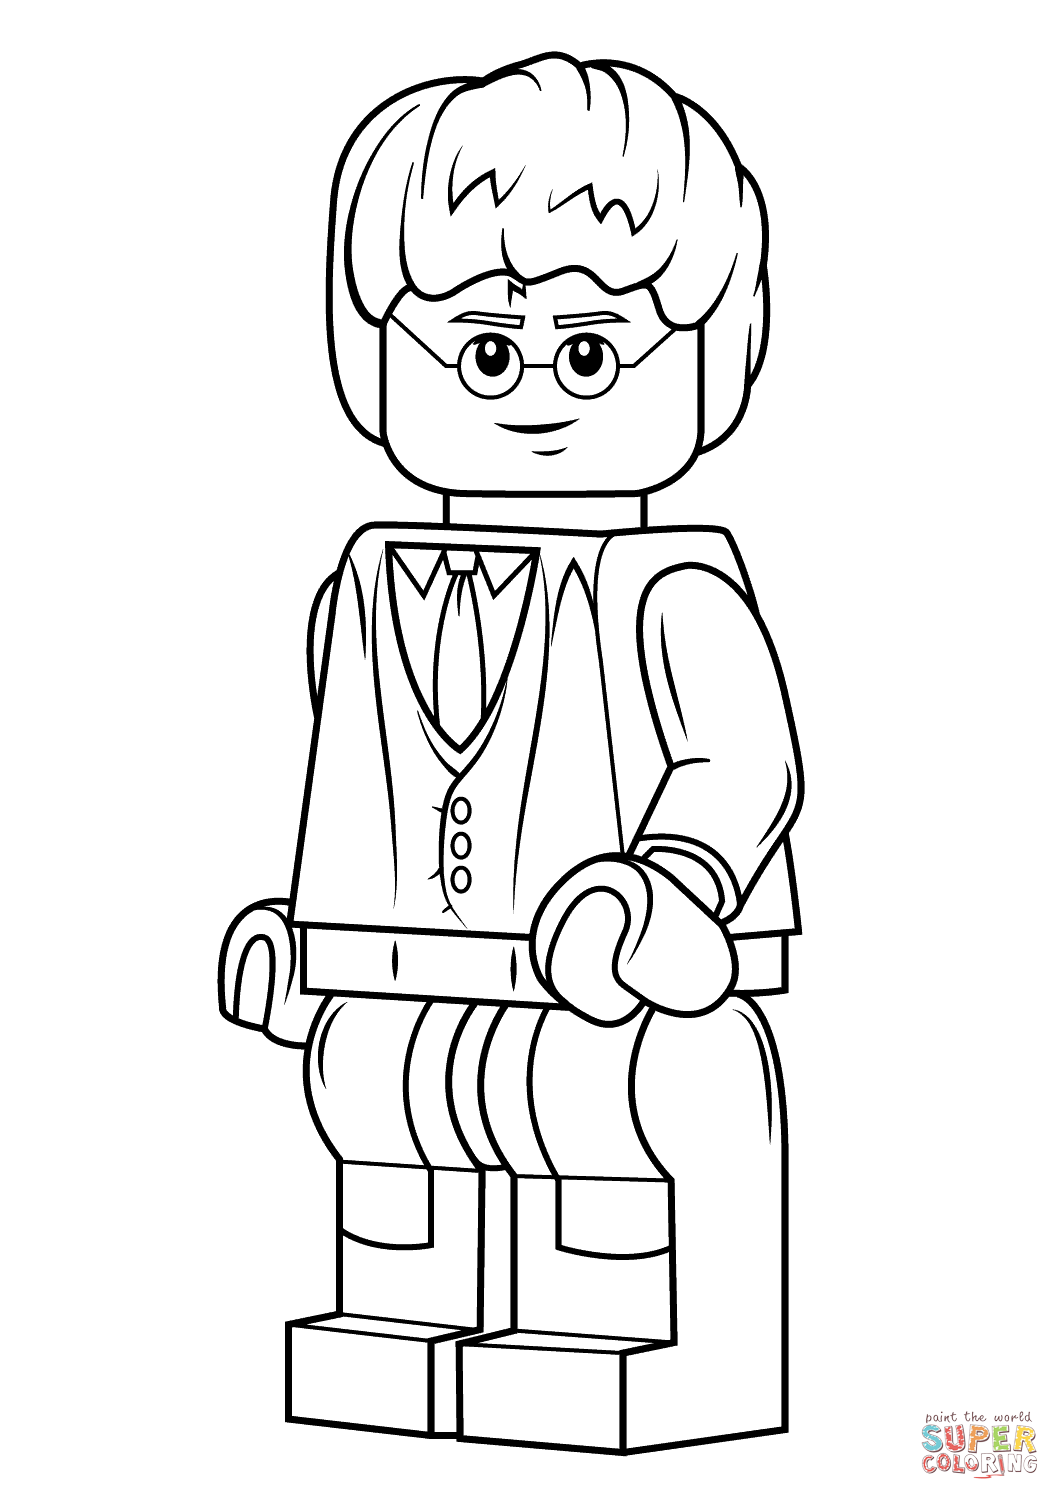 lego harry potter coloring page free printable coloring pages - Harry Potter Coloring Pages